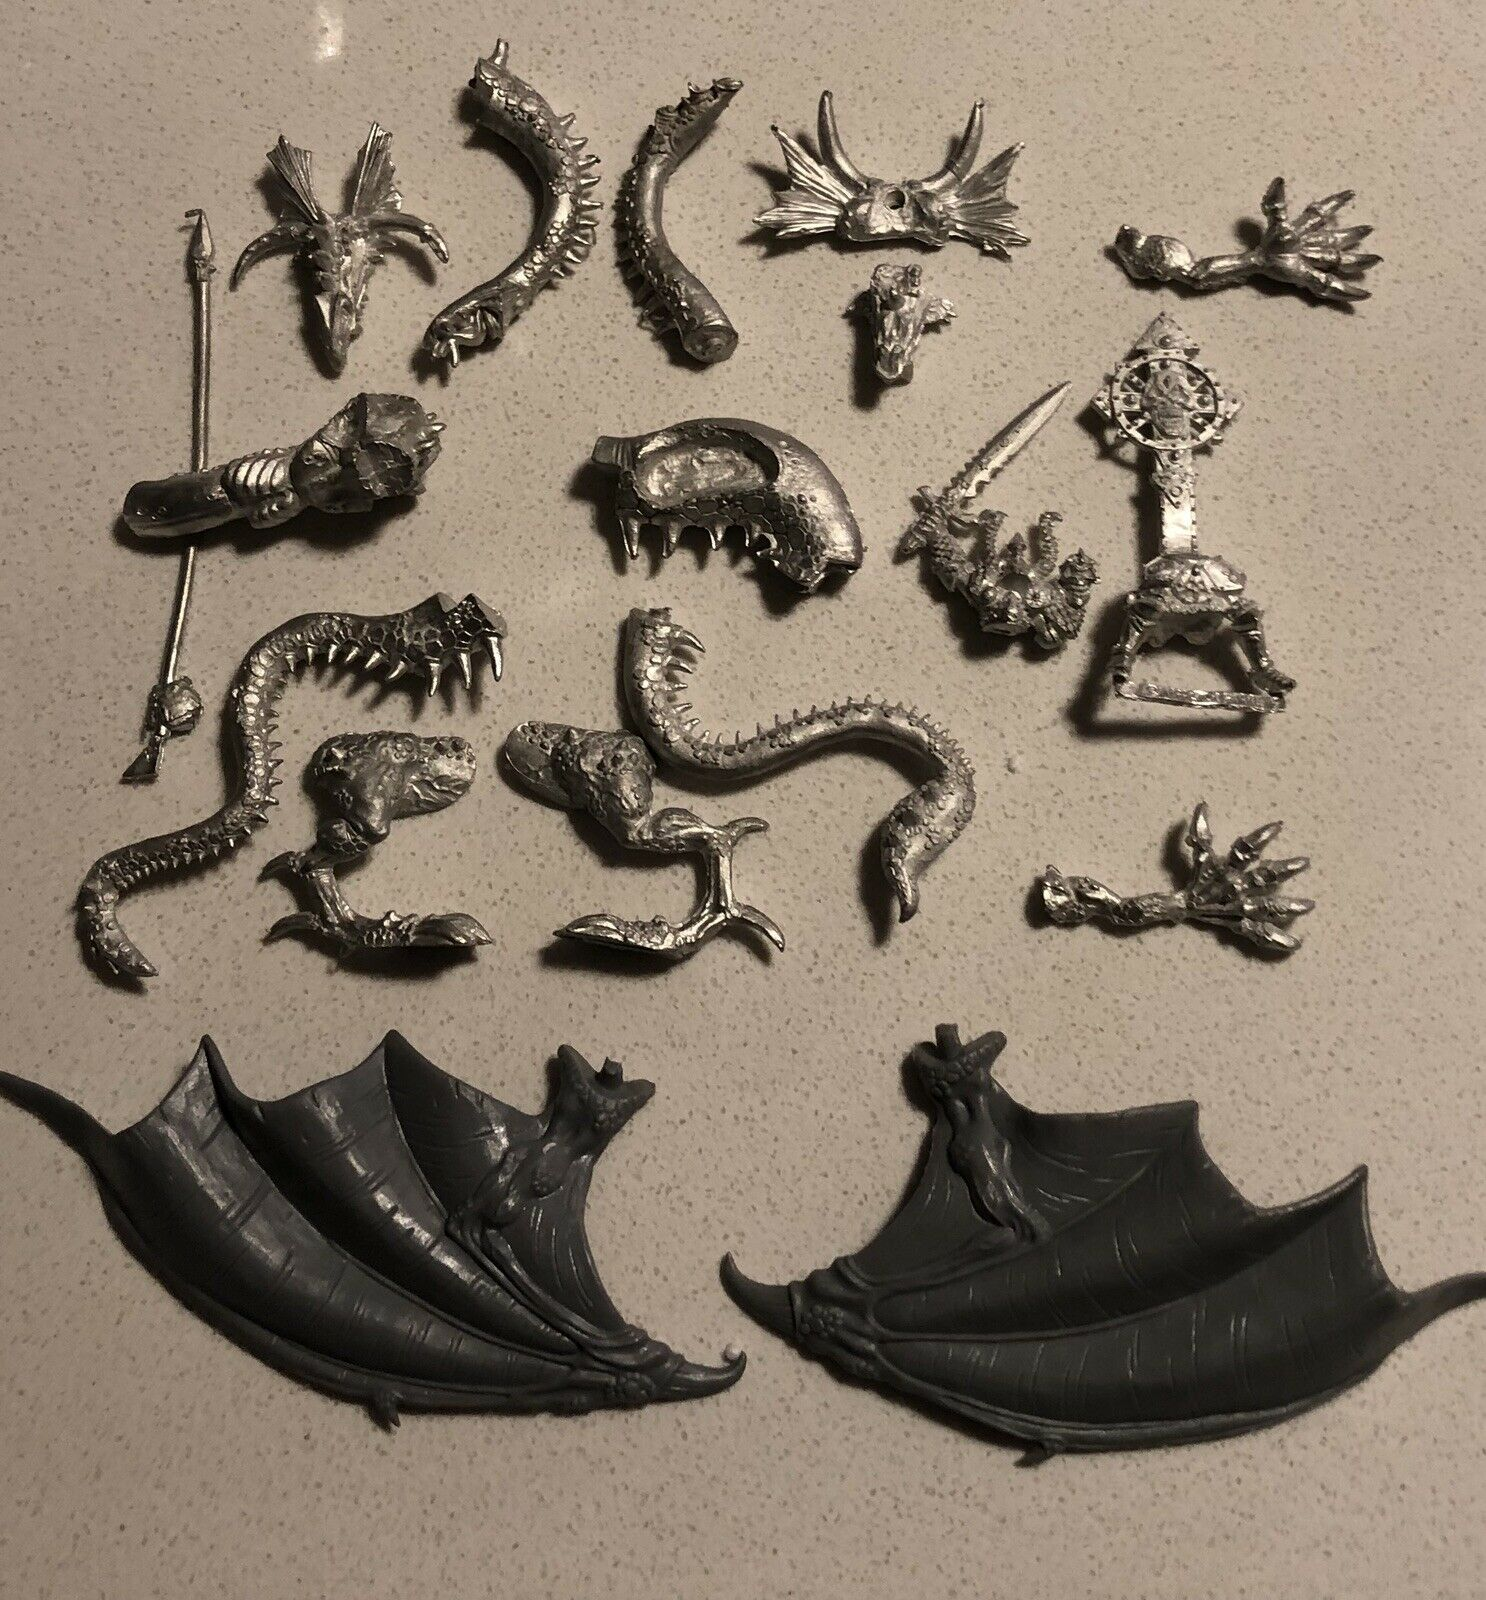 EGRIMM VAN HORSTMANN ON CHAOS DRAGON OOP METAL WHFB